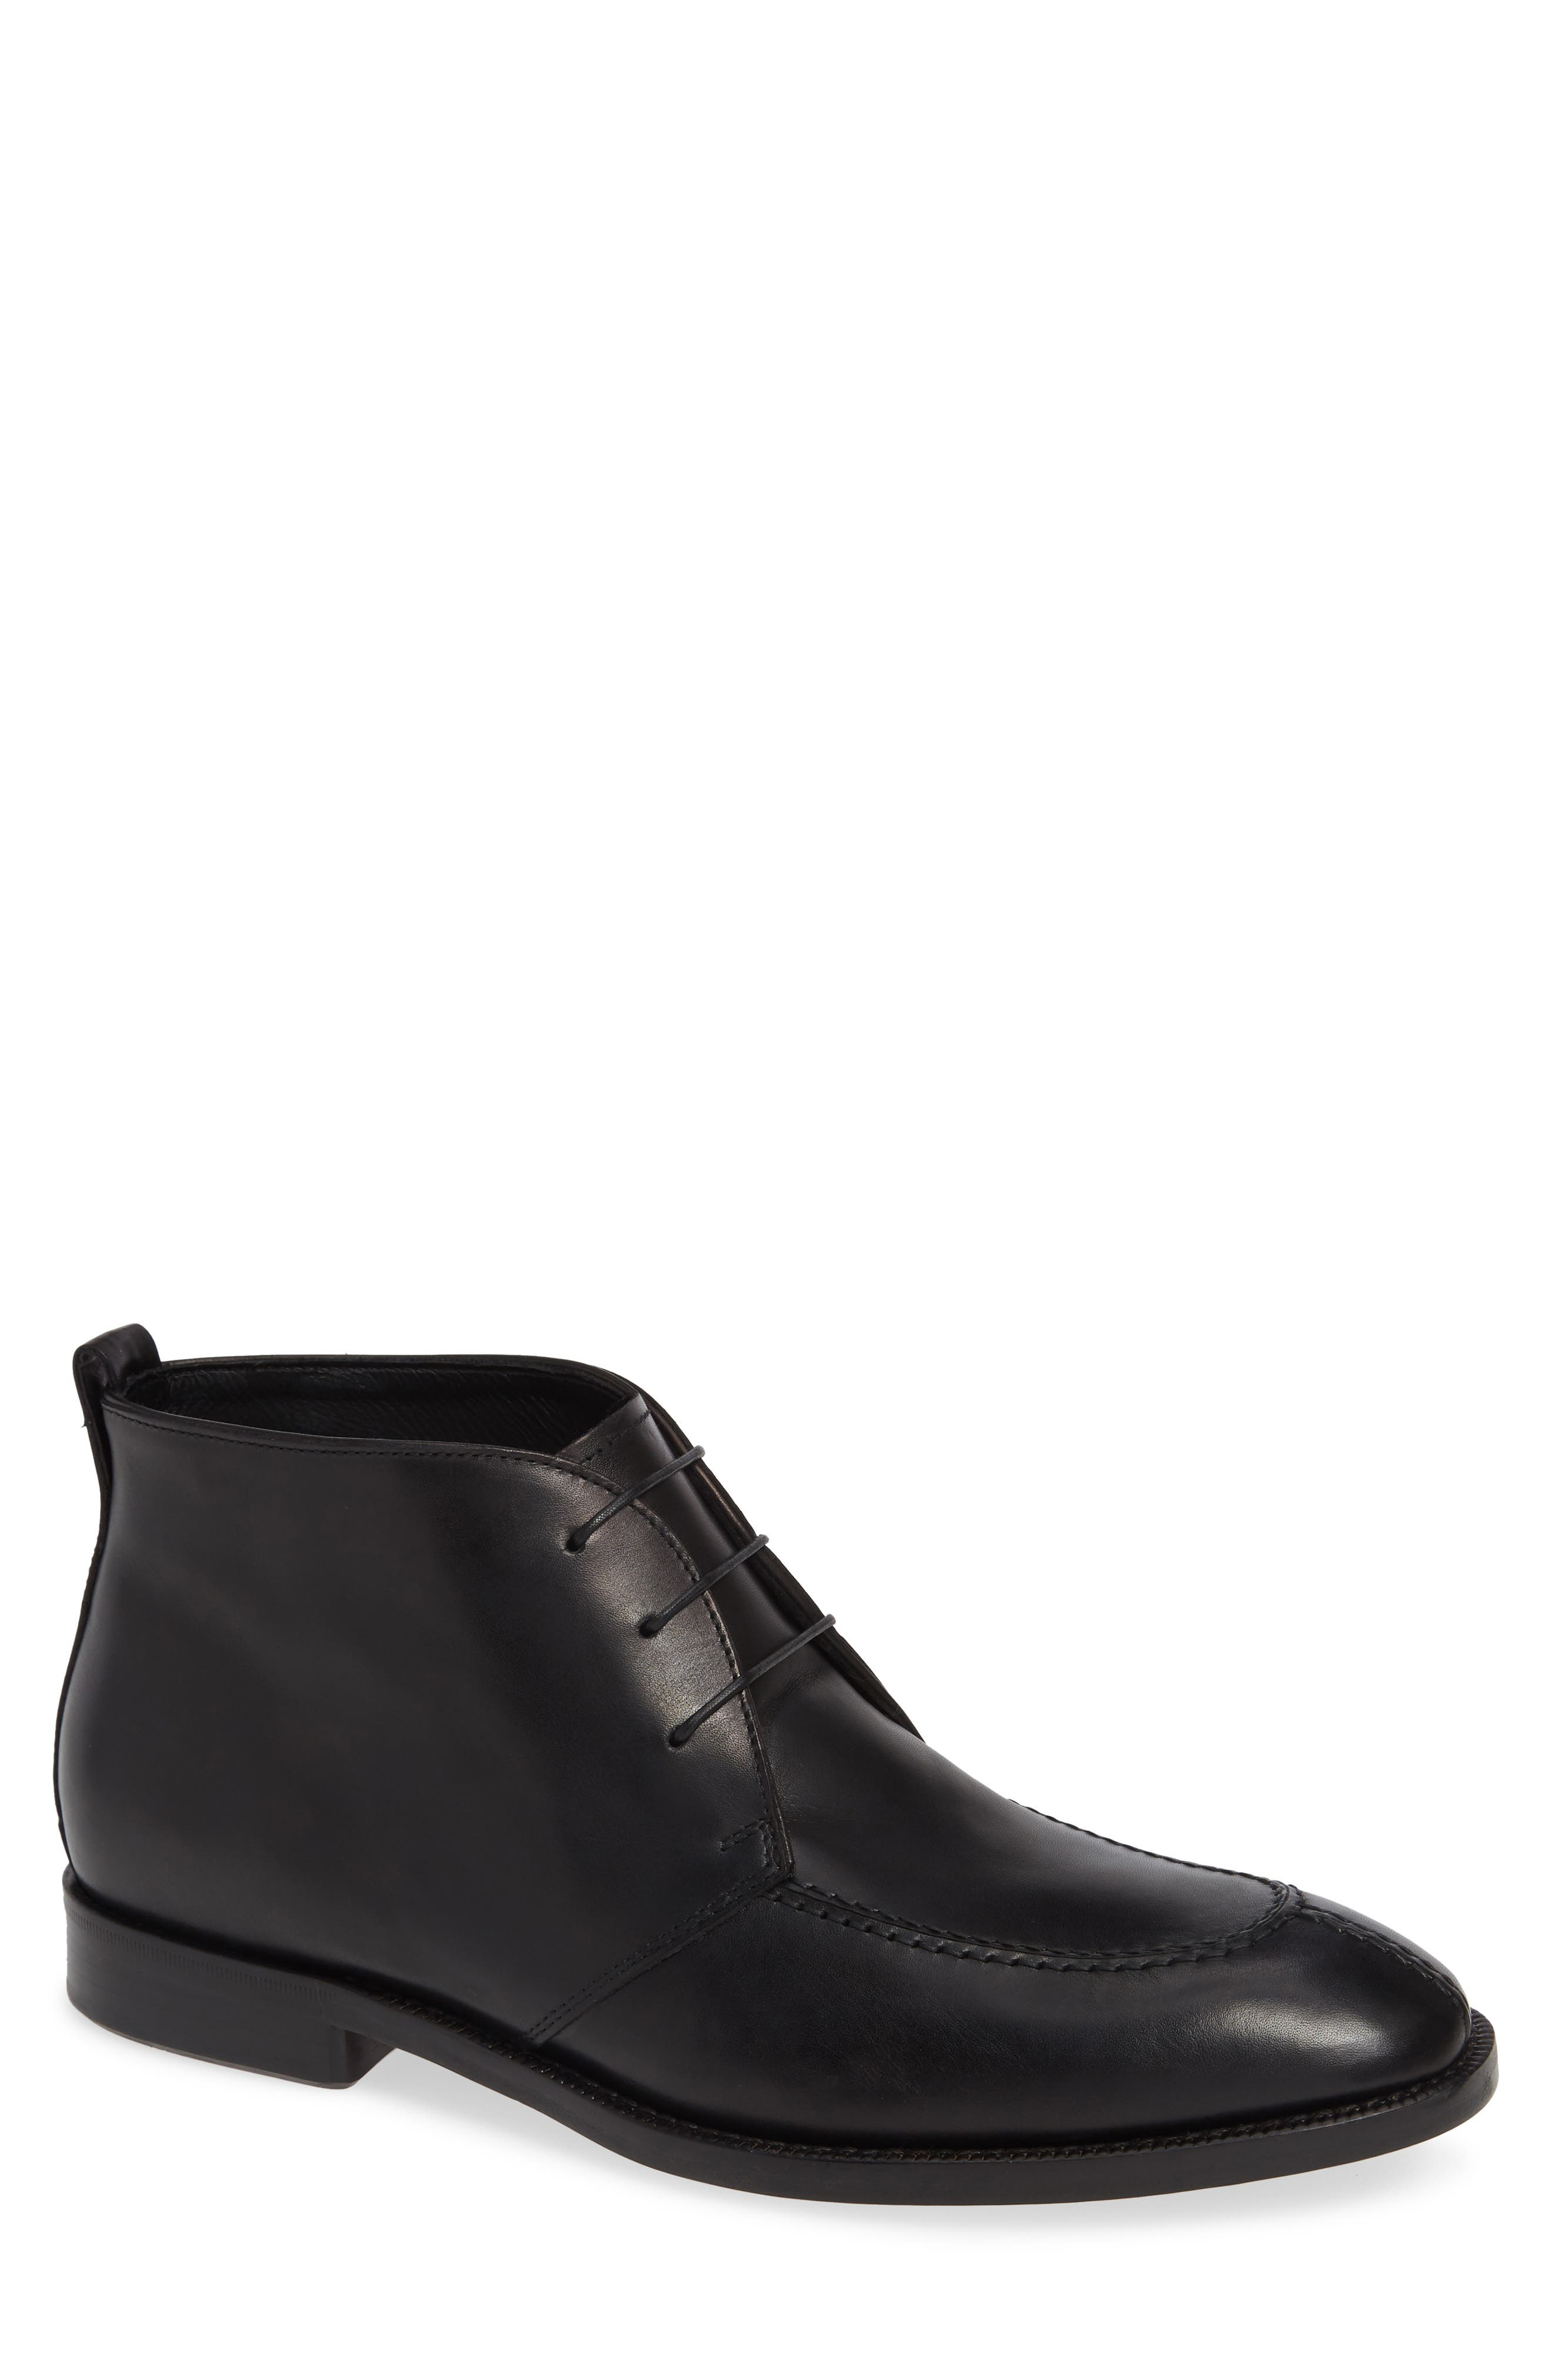 Allen Edmonds Rafael Chukka Boot EEE - Black